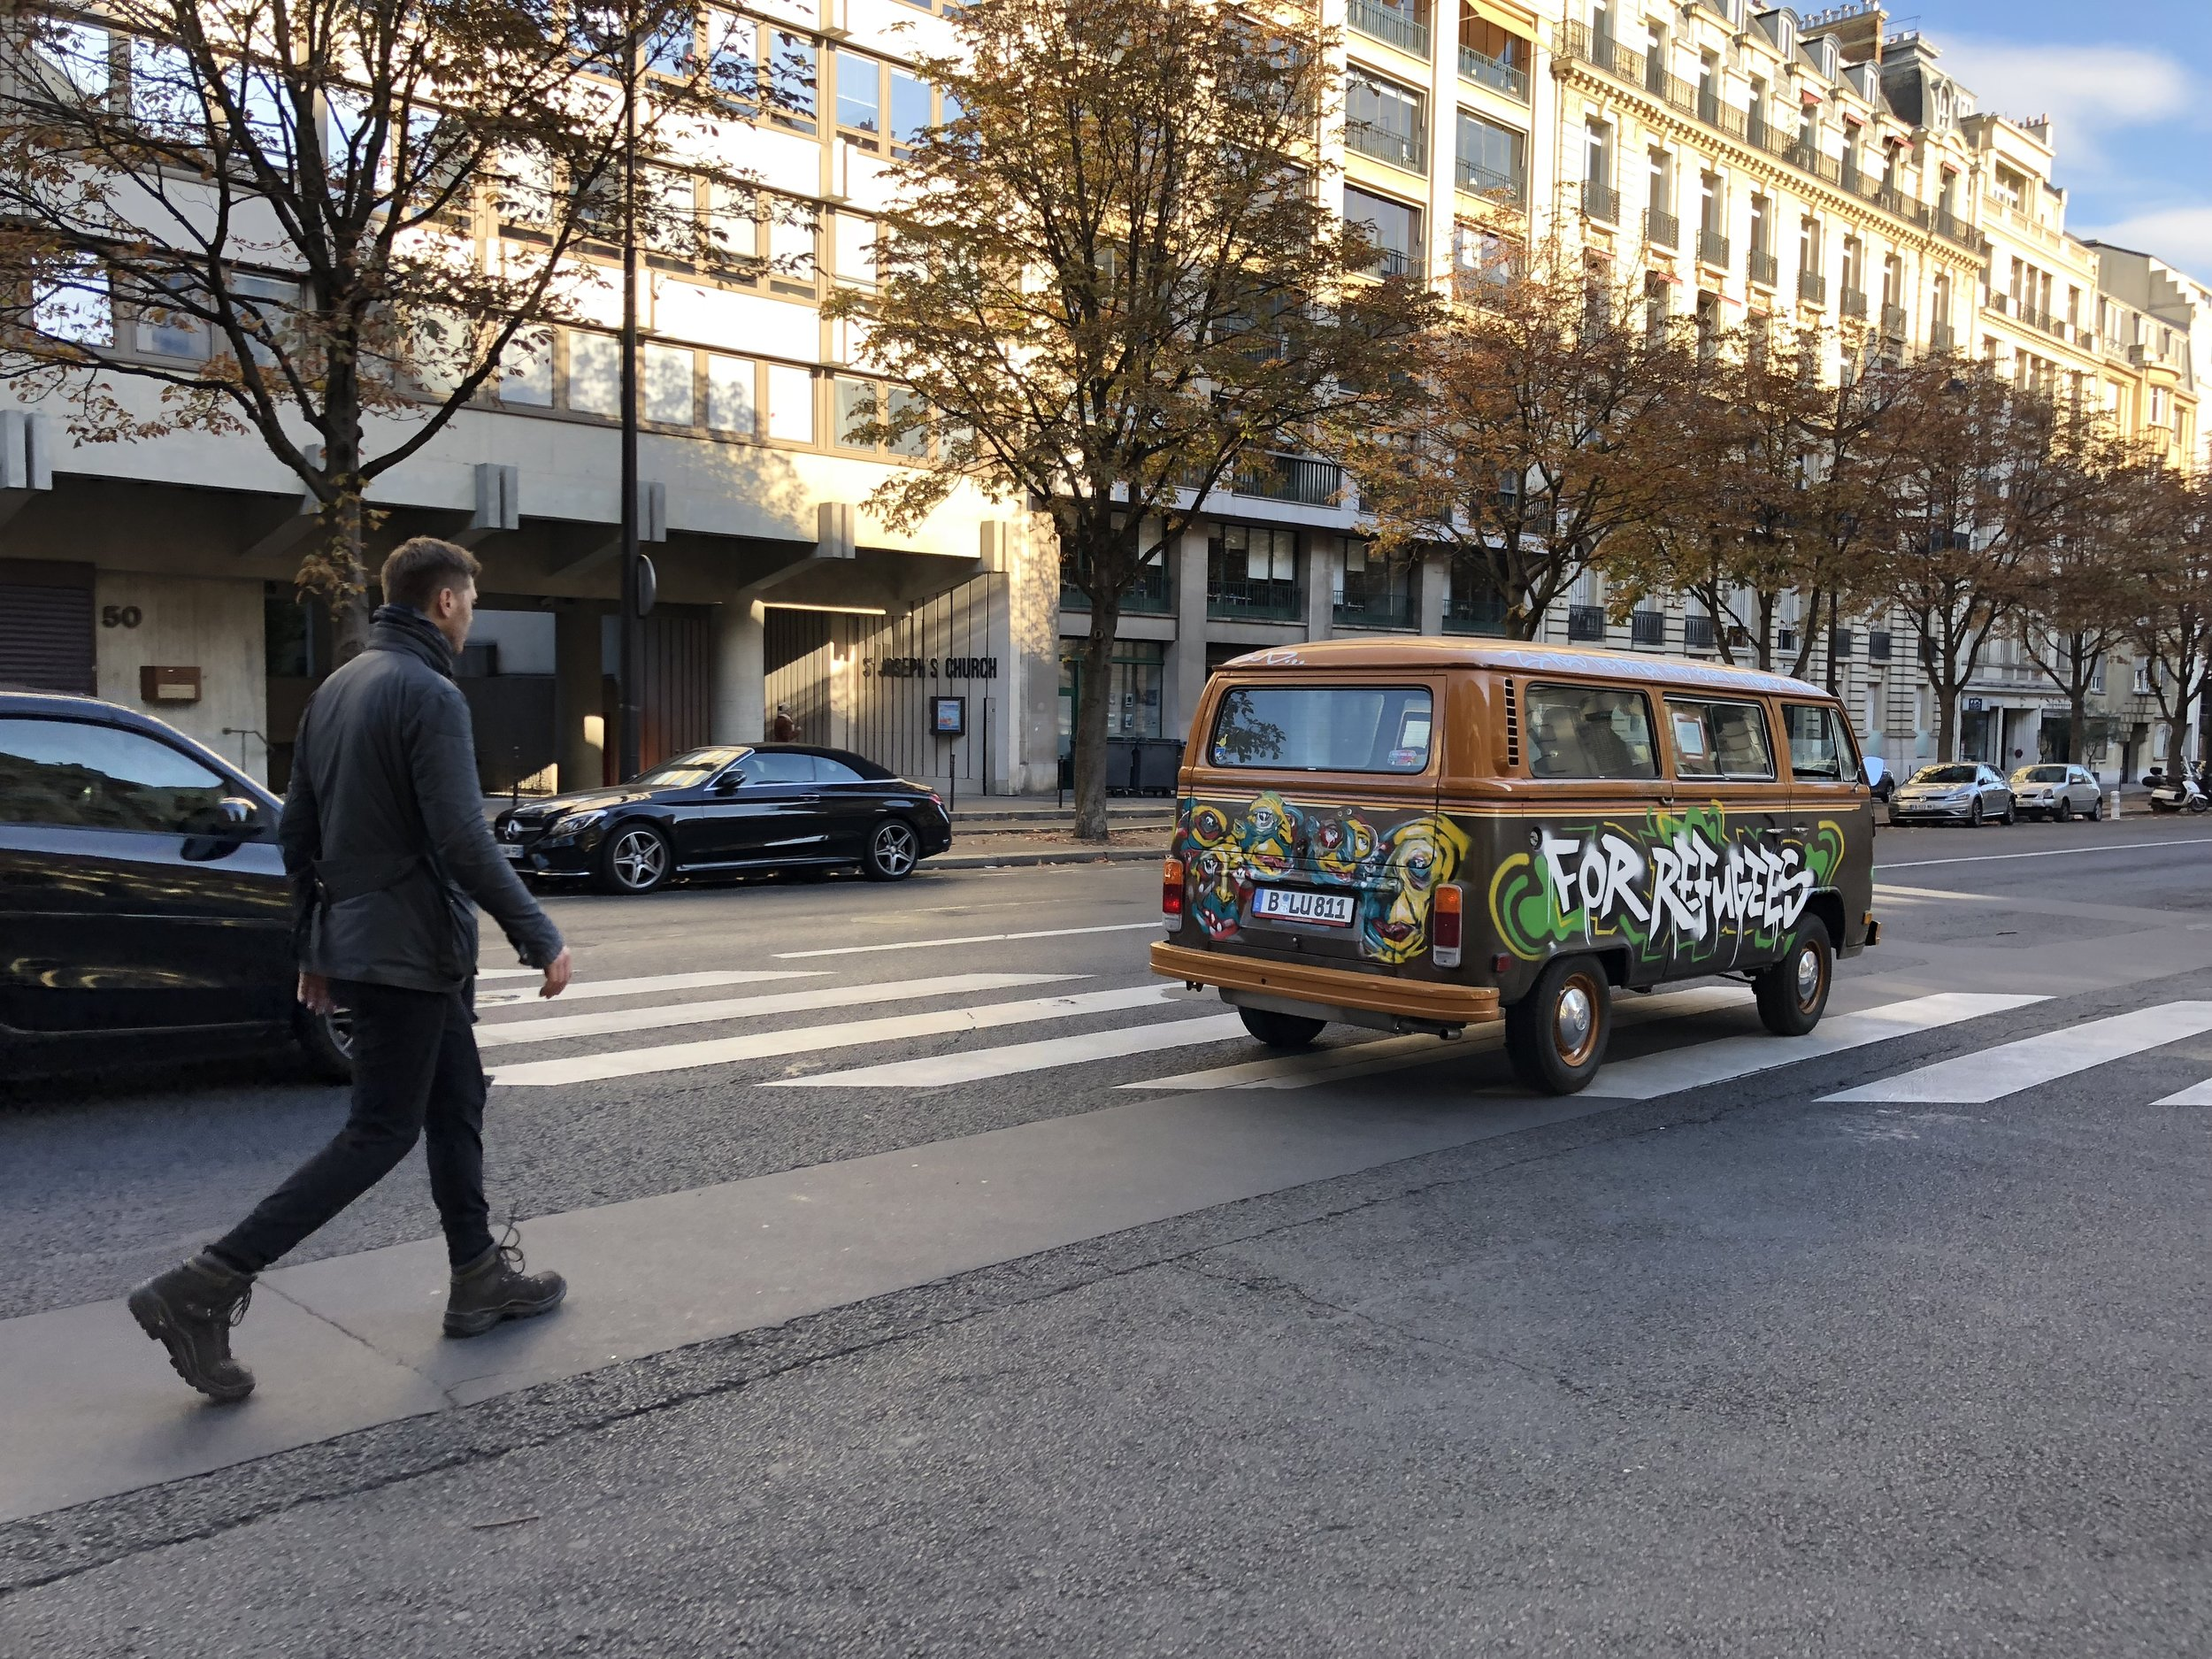 Grig walking behind the vw bus in Paris.JPG